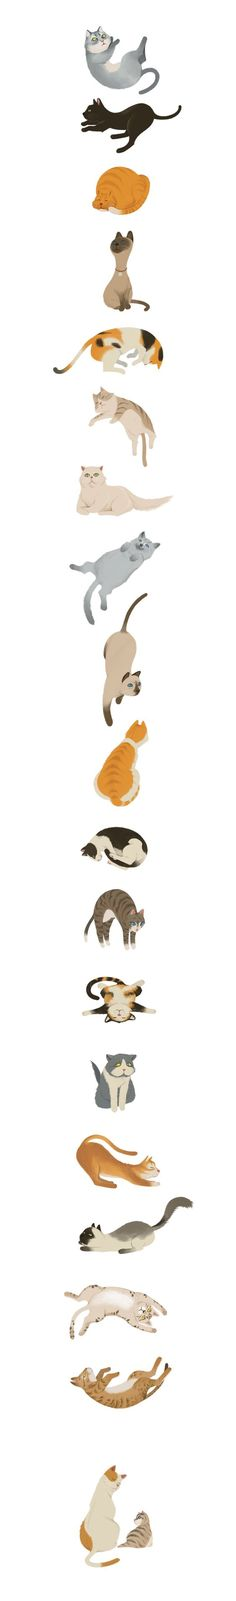 (1) Cats by Wonho Jung, via Behance   For The Love Of Cats   Pinterest